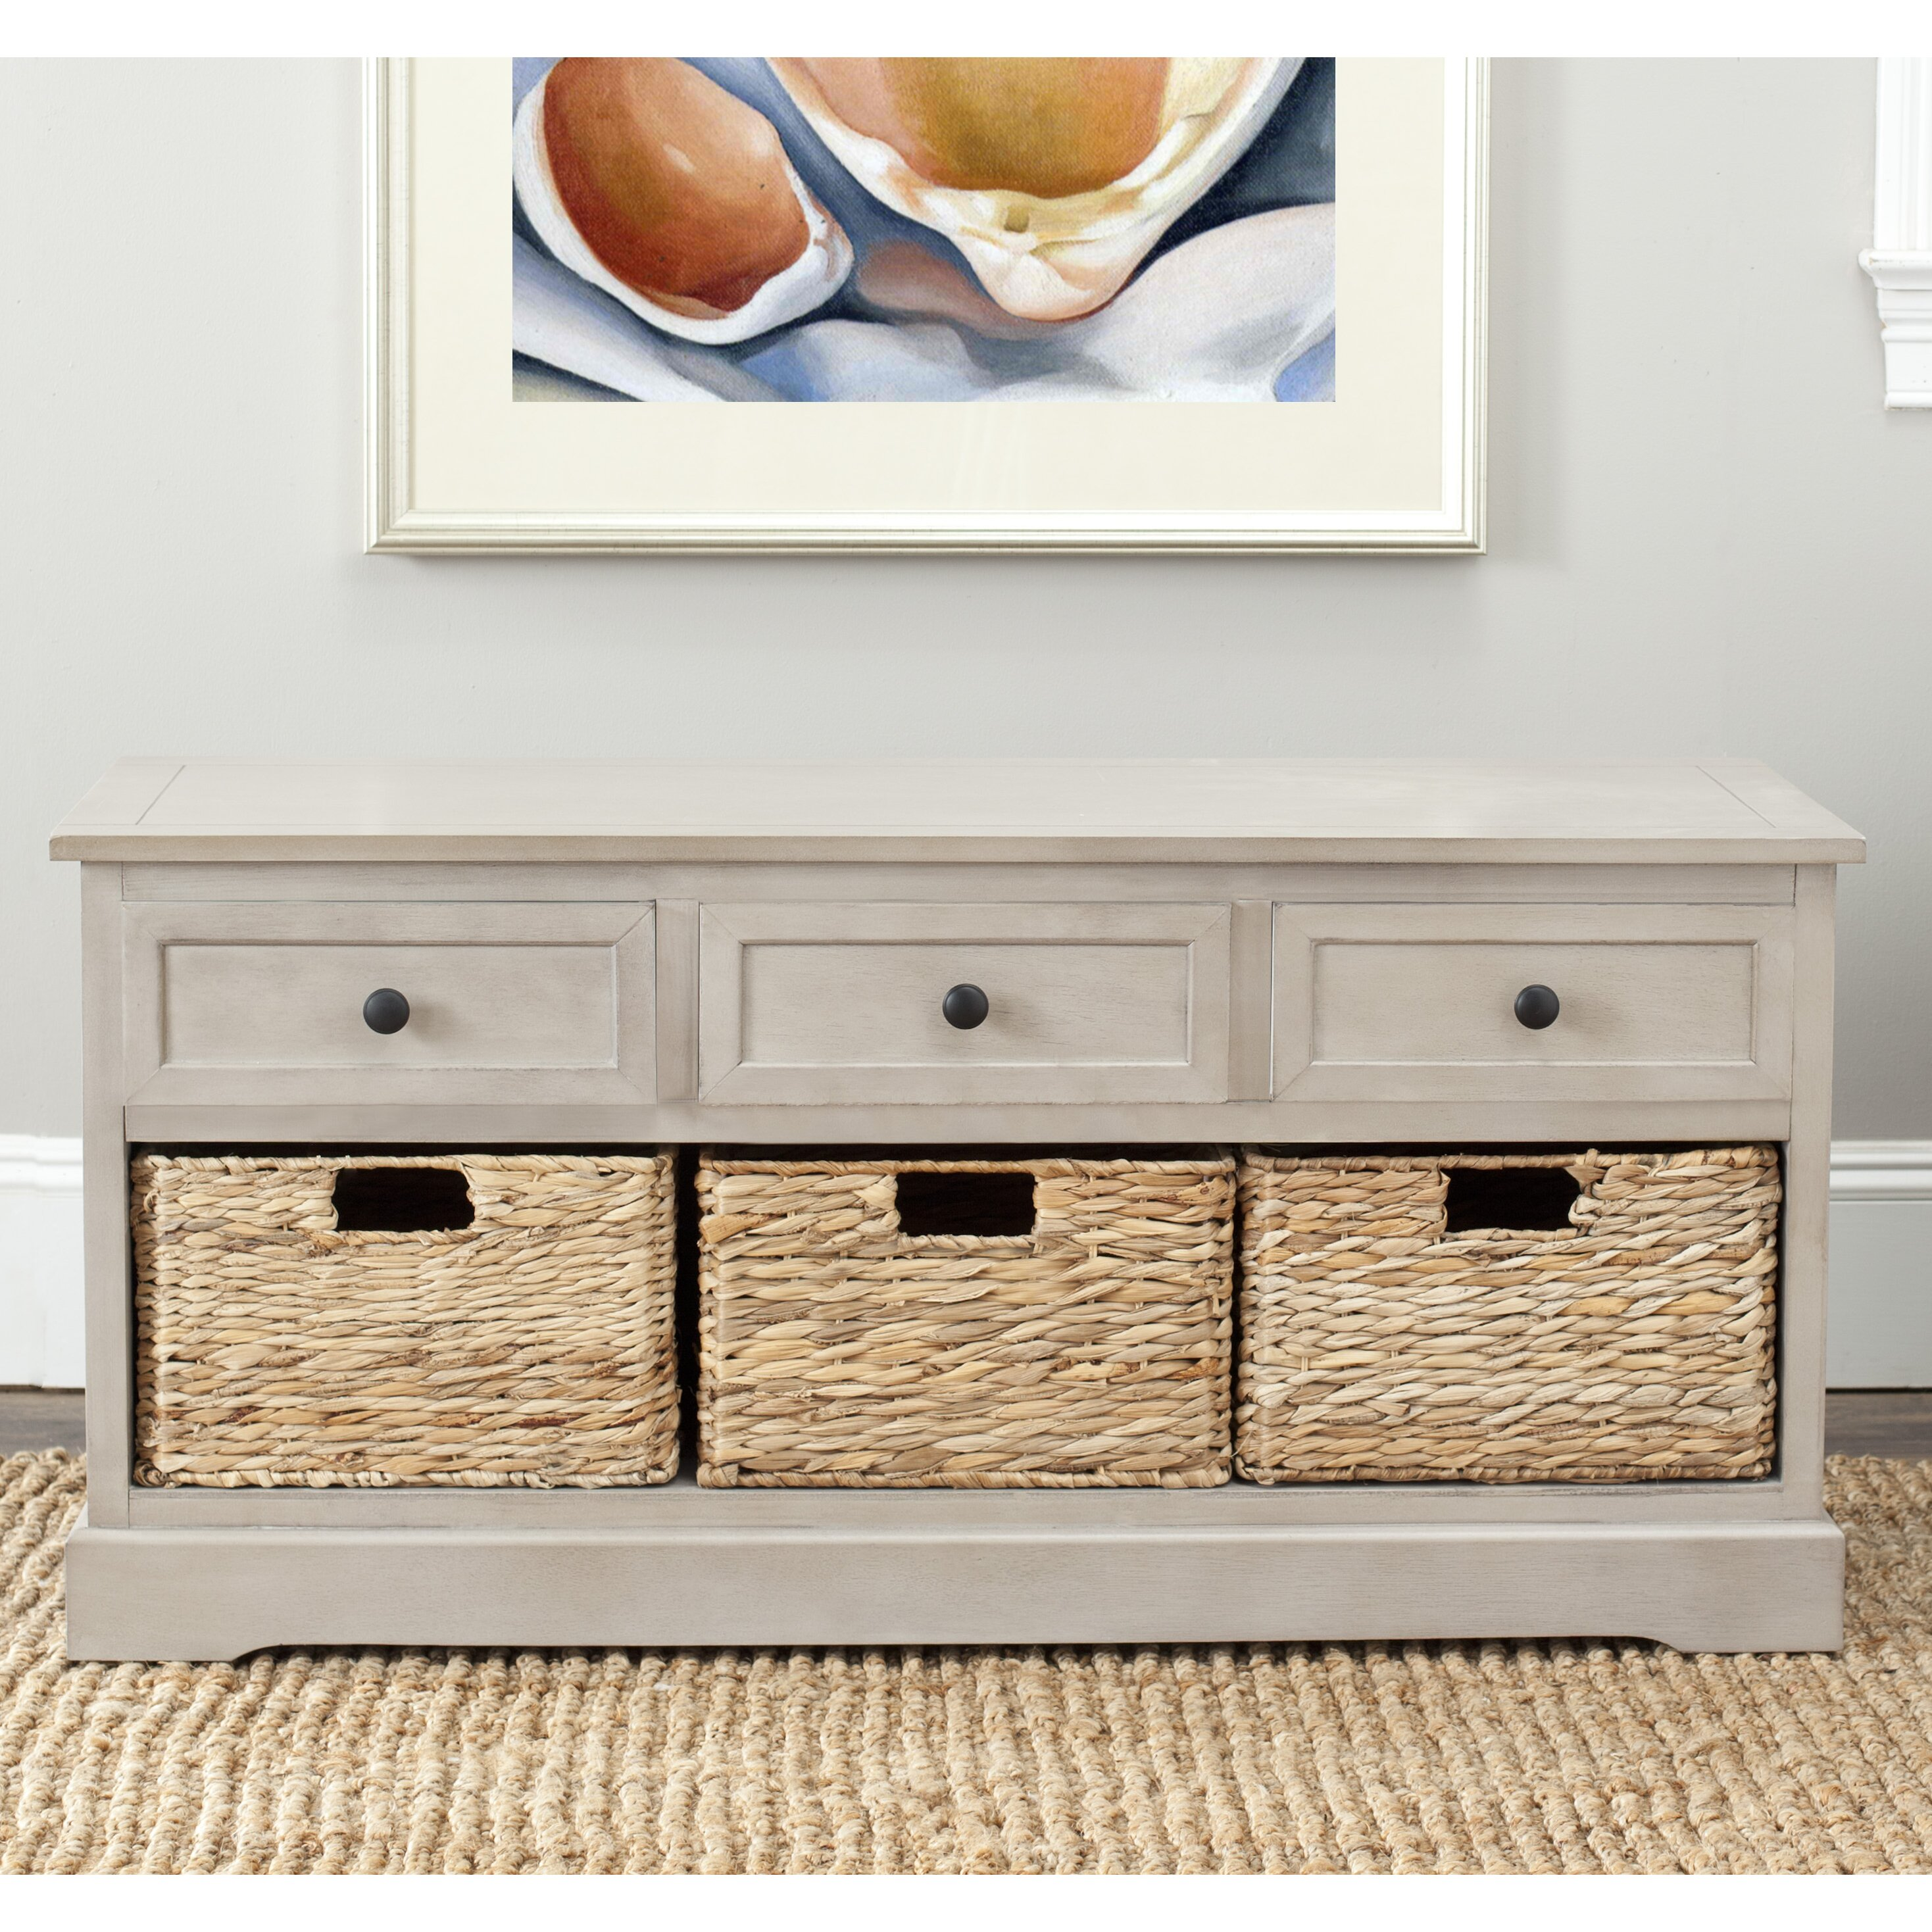 Foyer Storage Drawers : Beachcrest home mckinley drawer storage entryway bench